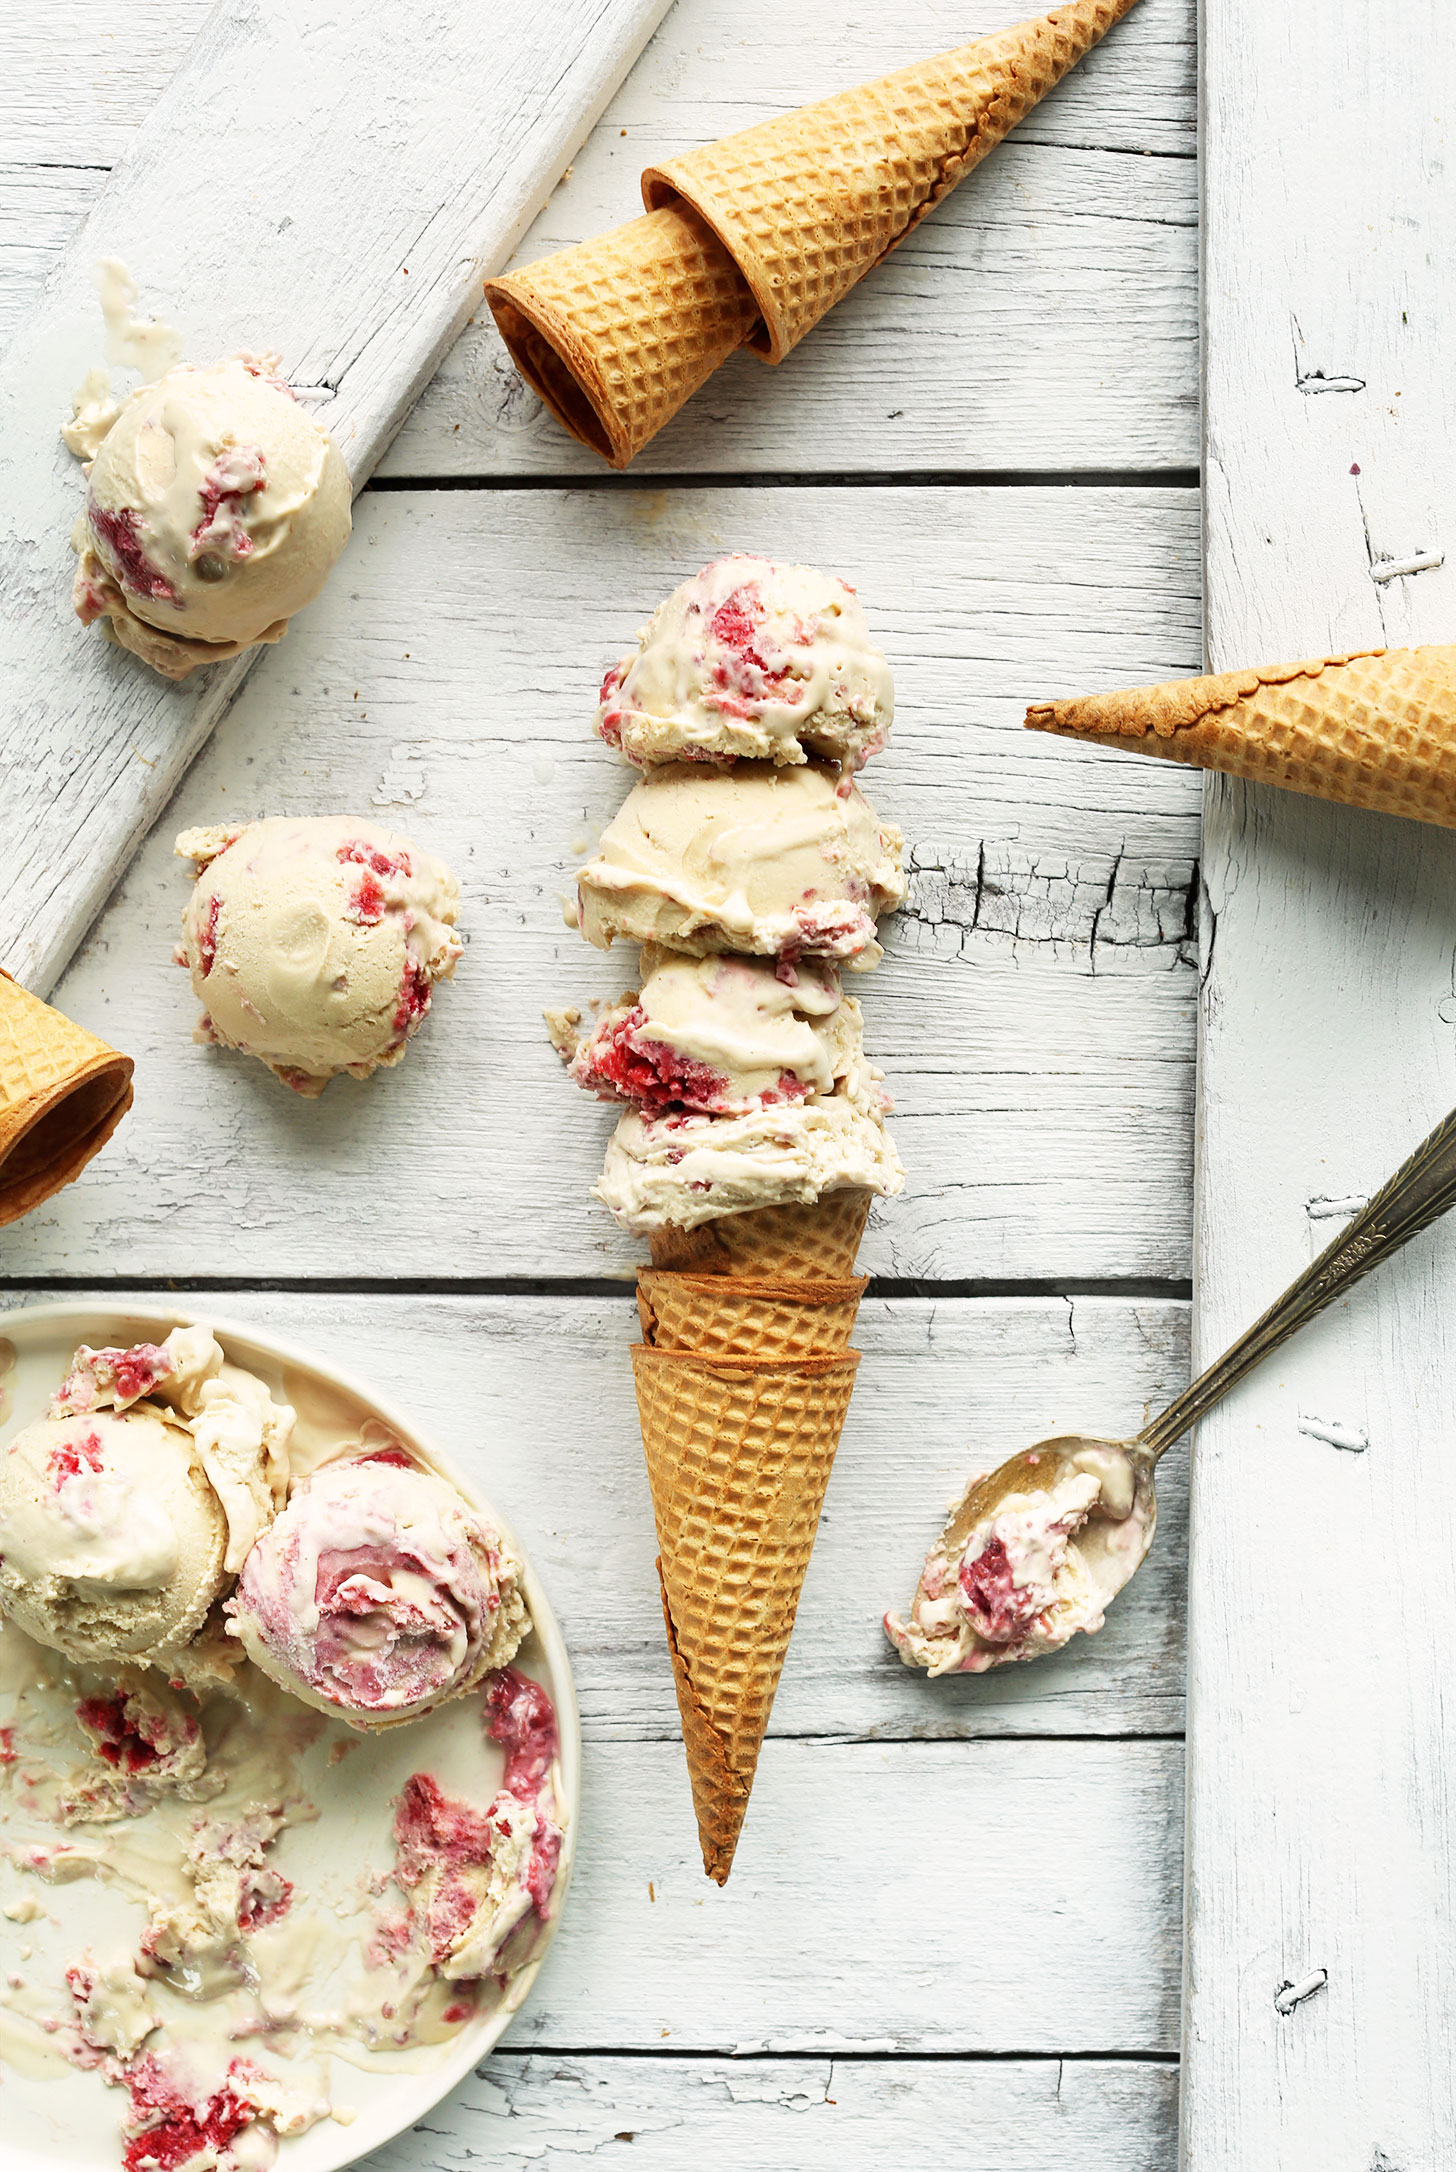 Sugar cone piled high with scoops of our delicious homemade vegan Raspberry Swirl ice cream